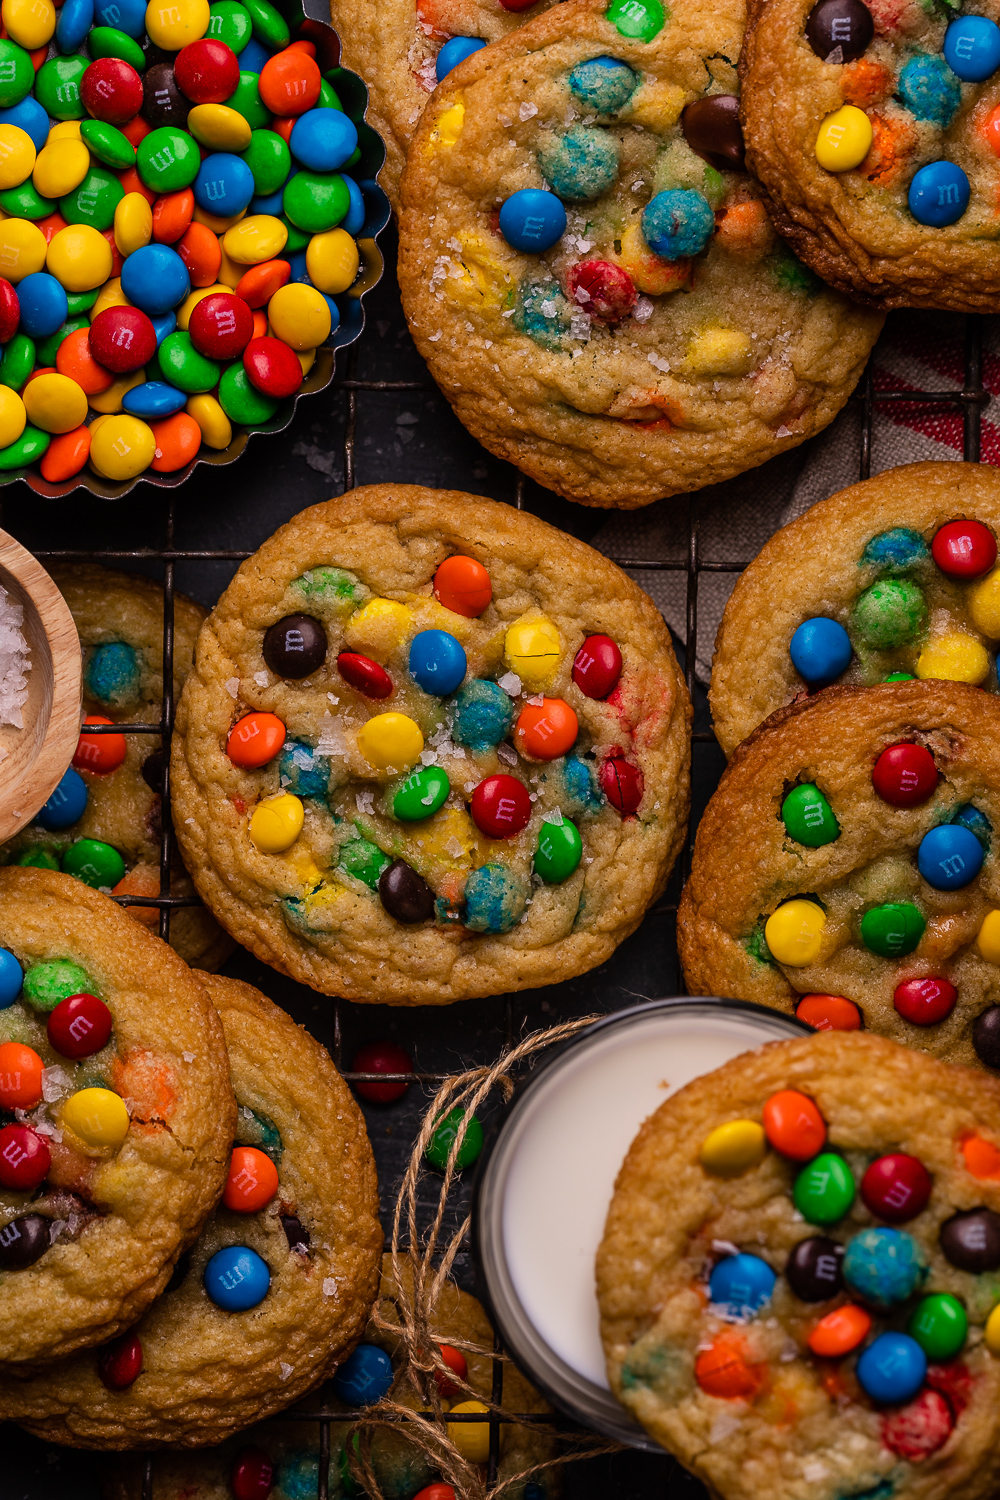 Brown Butter M&M Cookies are soft, chewy, and flavorful! Loaded with colorful M&M candies, these are always a crowd pleaser! The brown butter makes them extra special!